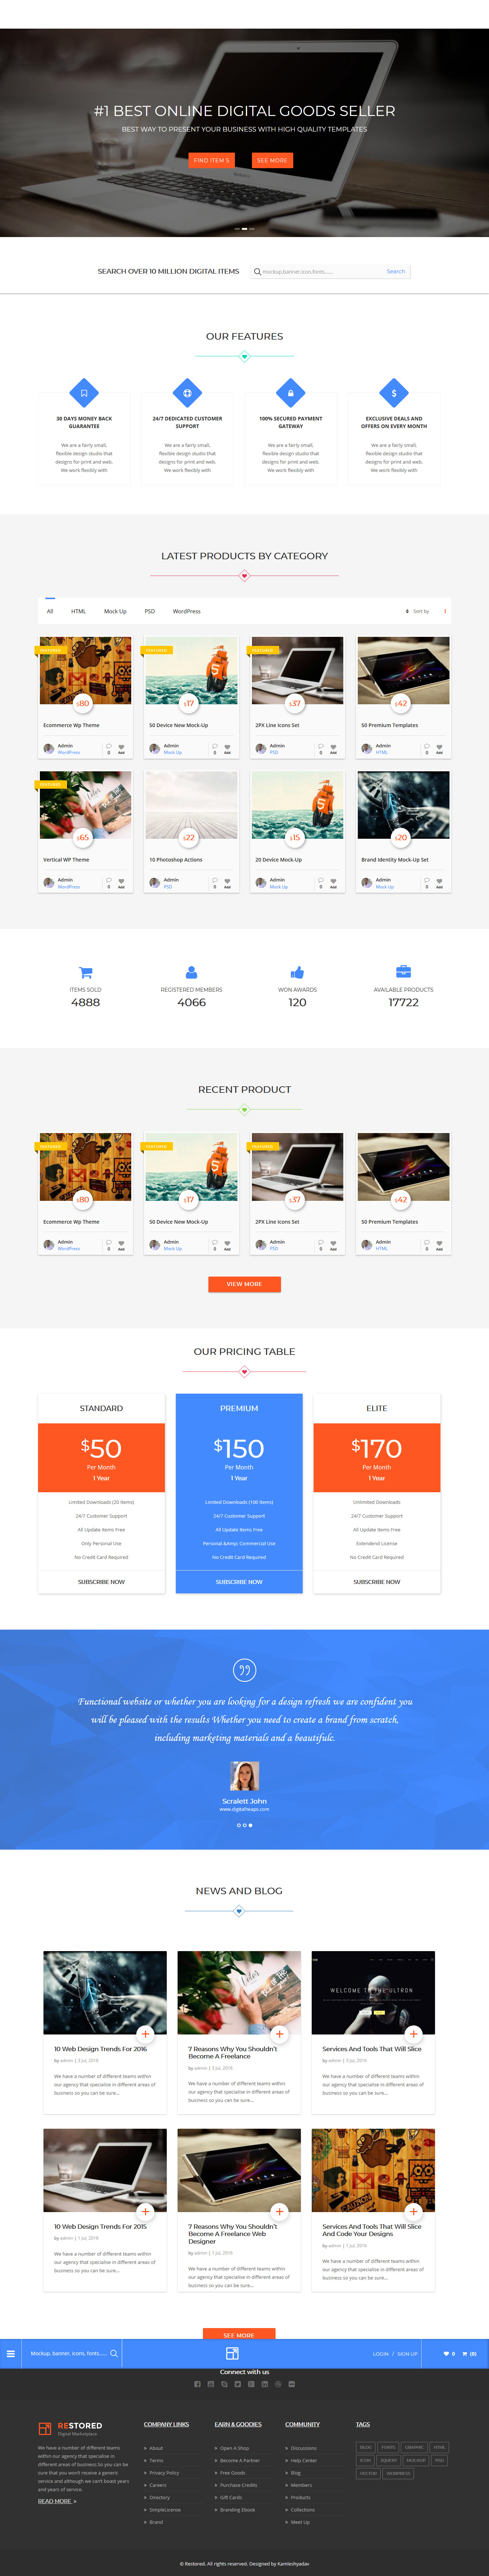 restored marketplace best premium marketplace wordpress theme - 10+ Best Premium Marketplace WordPress Themes